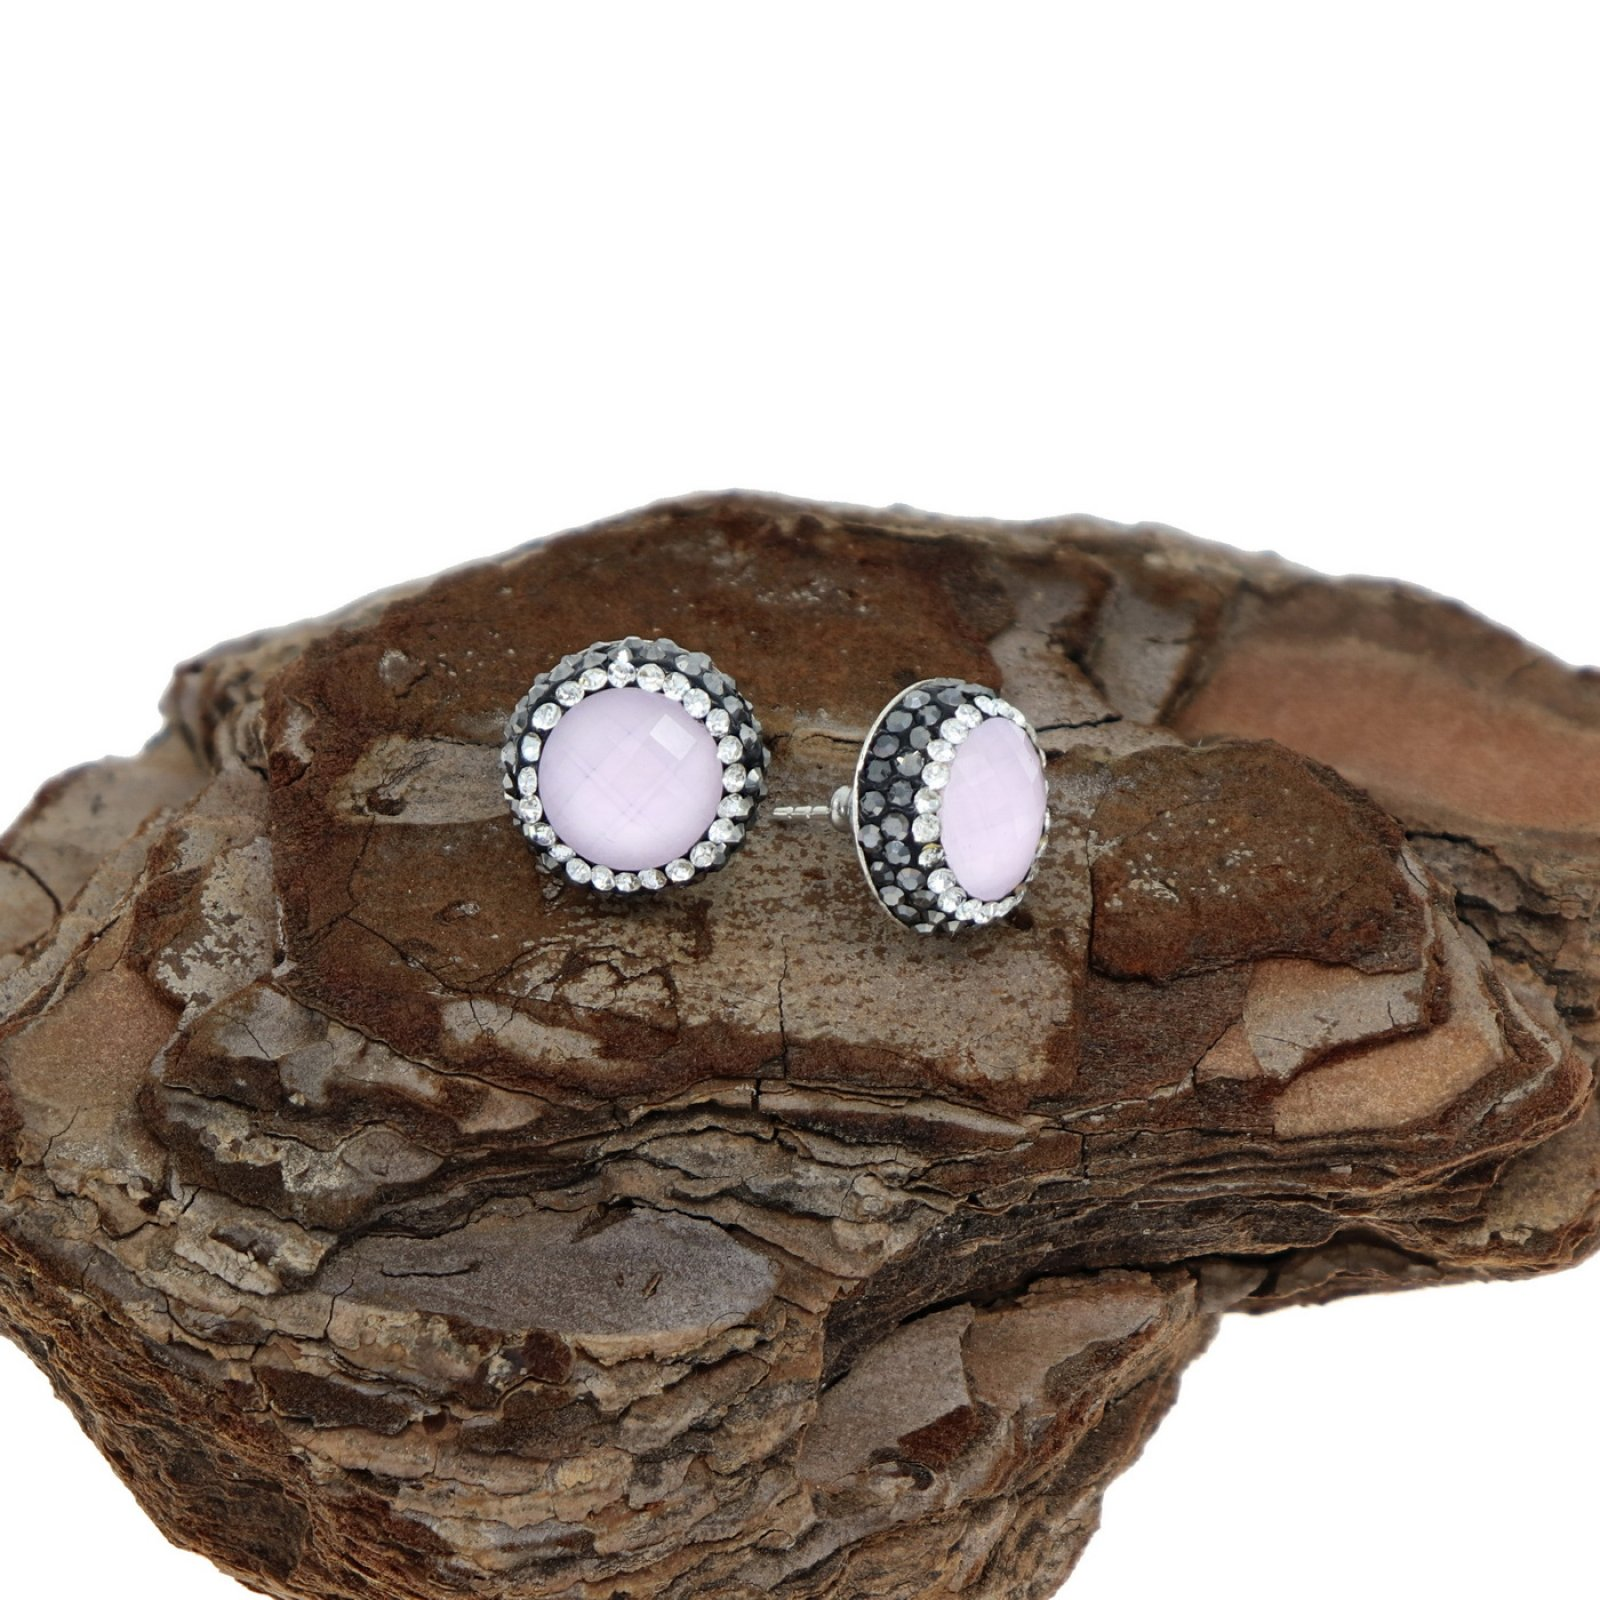 DRE133 - ROSE HYDRO QUARTZ STUD EARRING